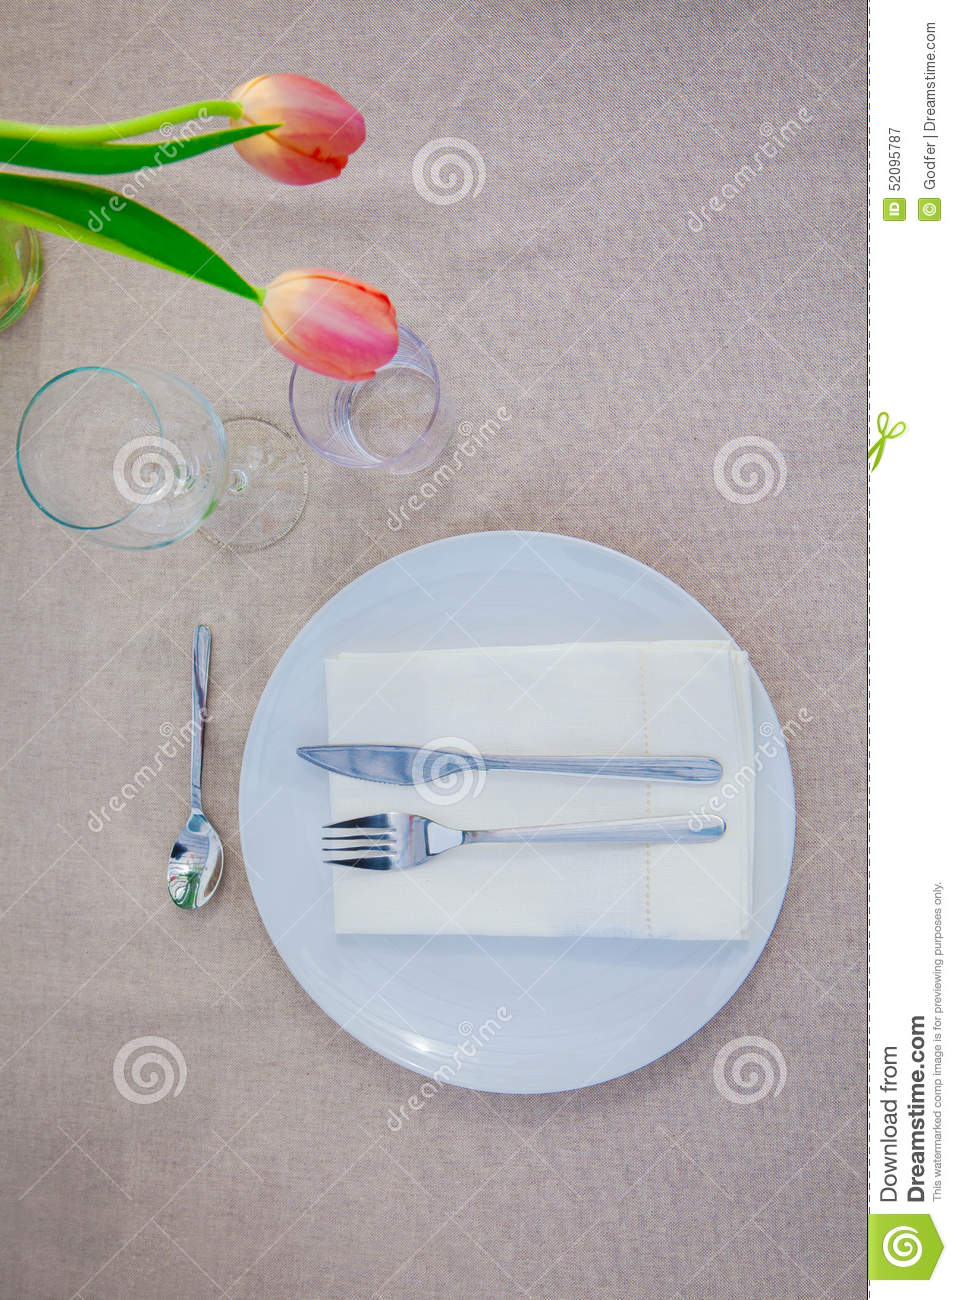 hight resolution of simple meal table setting